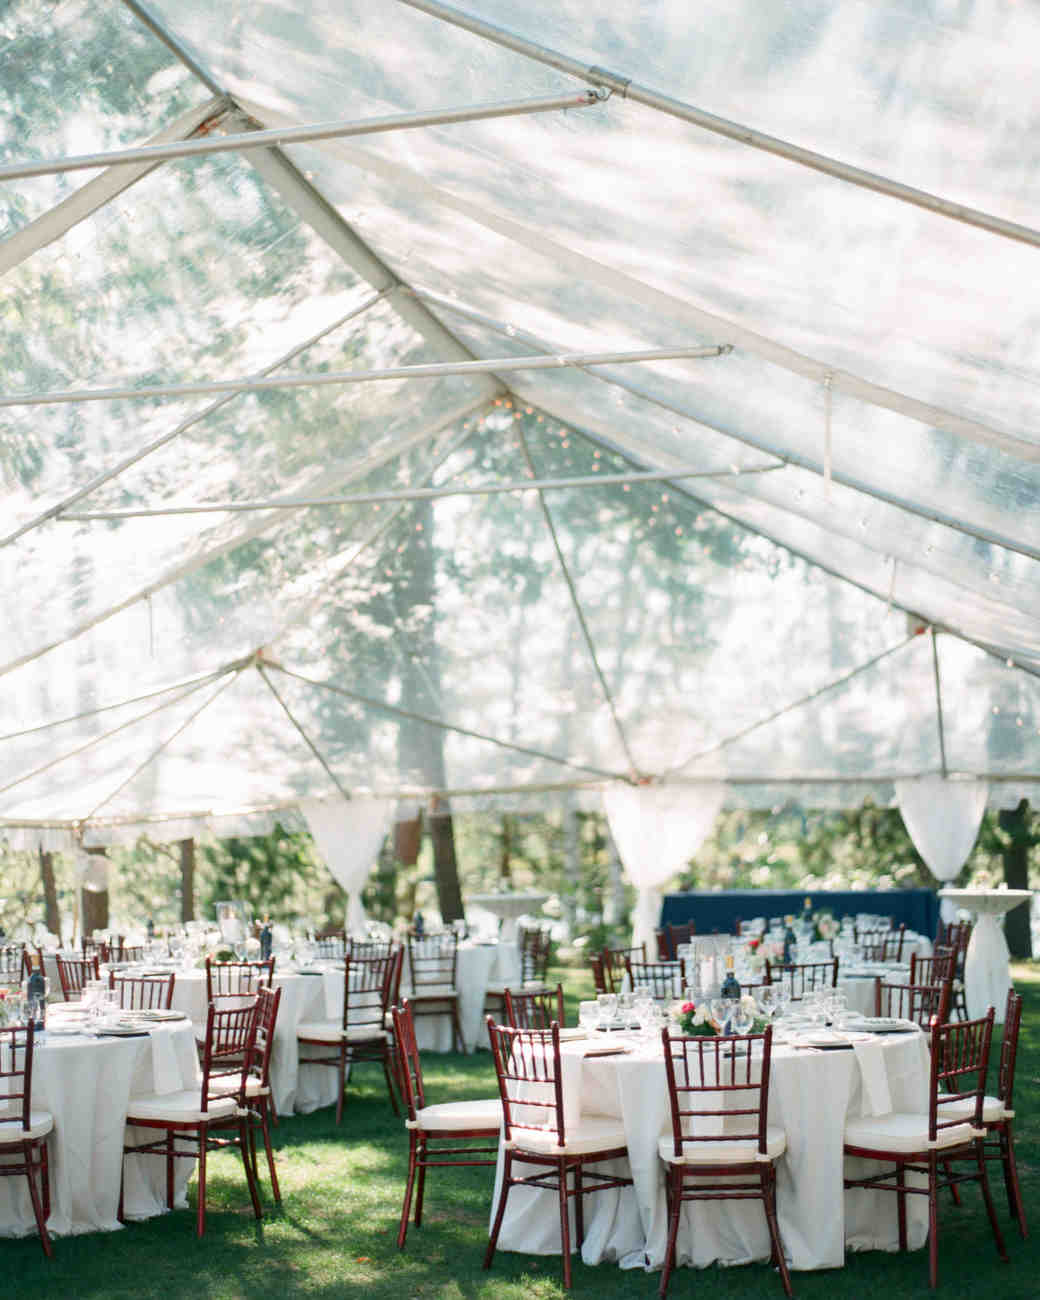 28 Tent Decorating Ideas That Will Upgrade